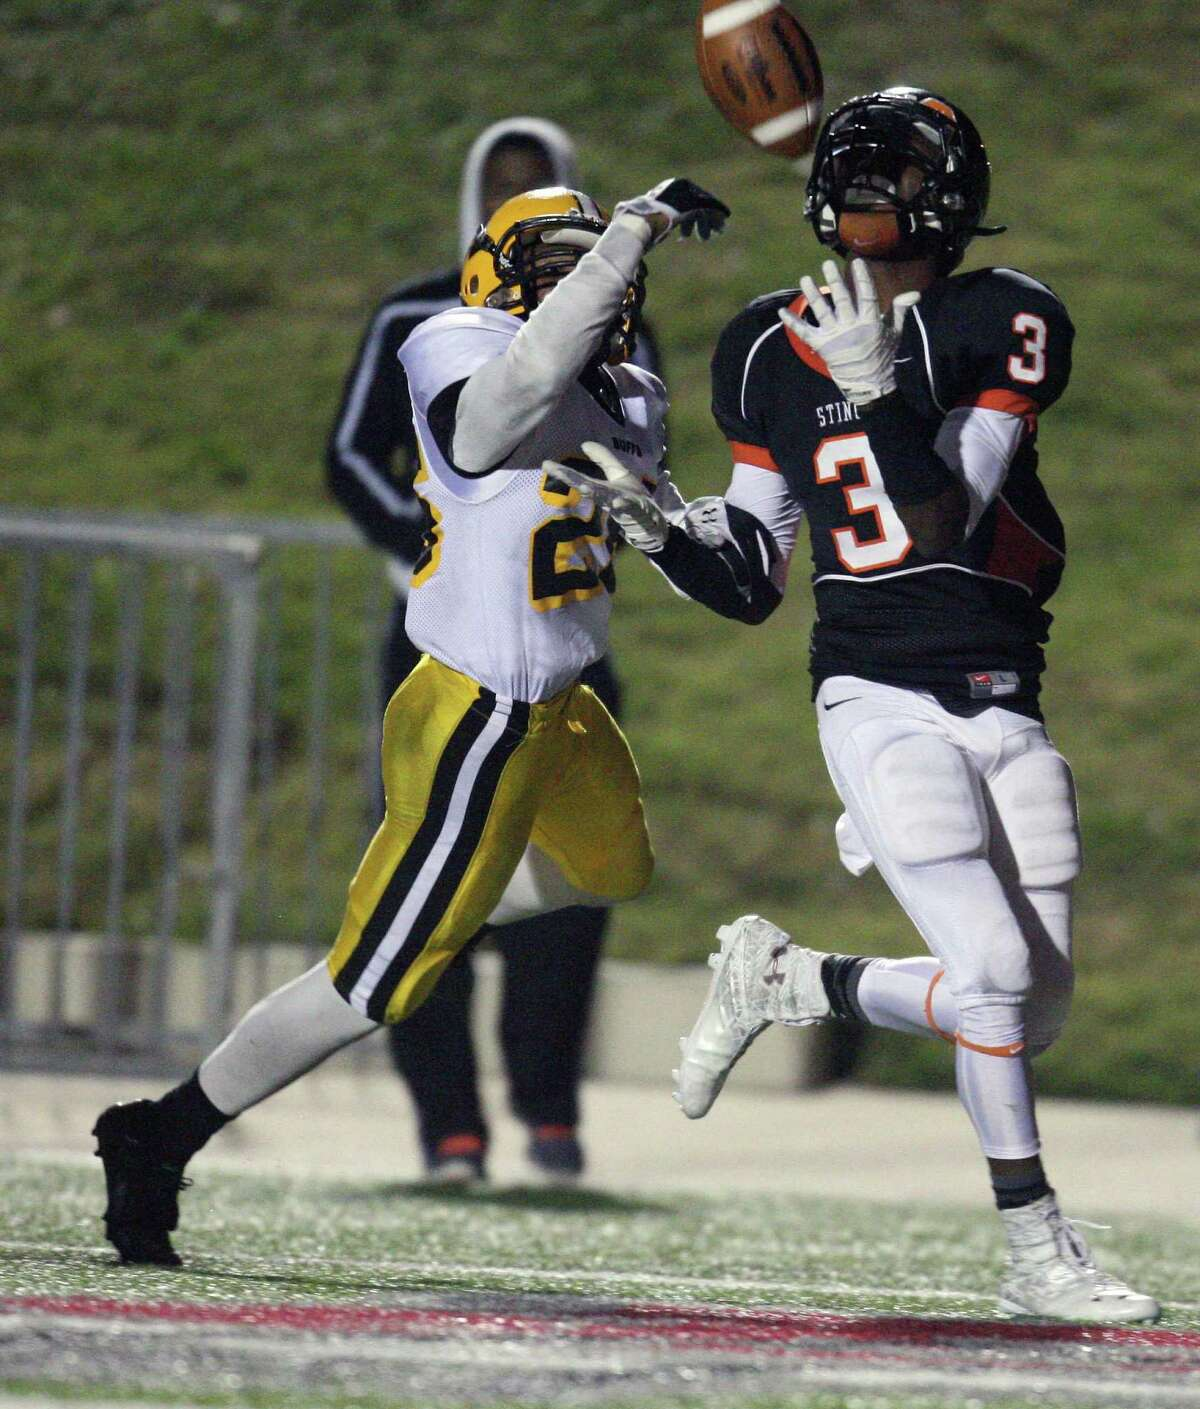 Texas City wide receiver Armanti Foreman (3), who has verbally committed to attend Texas, gave opposing defensive backs fits last season.